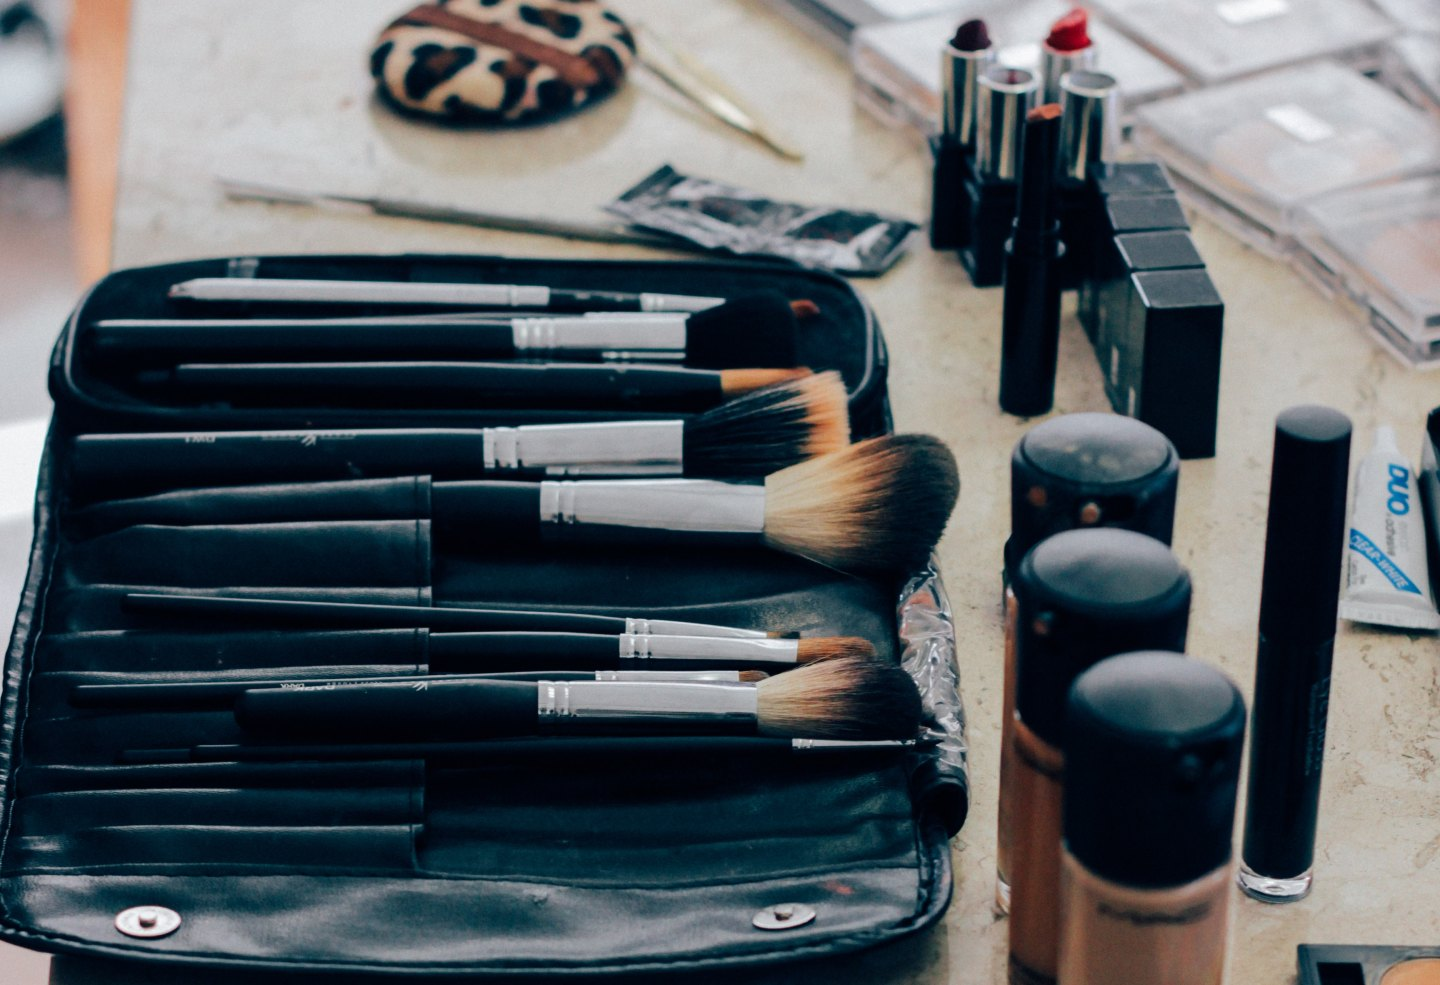 My Top 5 Favorite Beauty Products